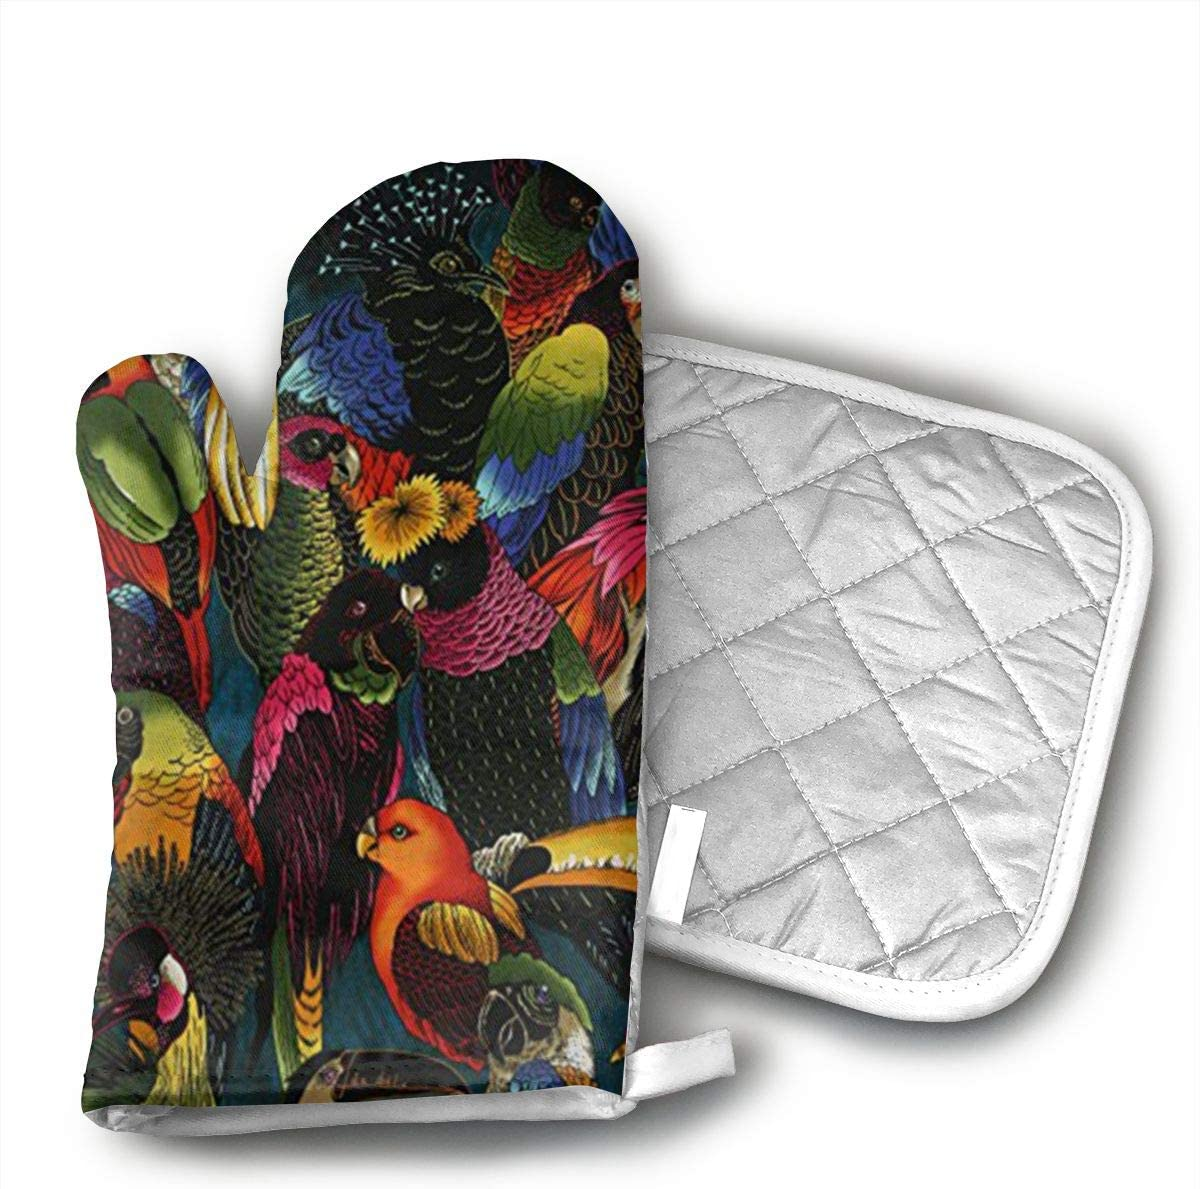 Wiqo9 Blue-Black Parrot Oven Mitts and Pot Holders Kitchen Mitten Cooking Gloves,Cooking, Baking, BBQ.